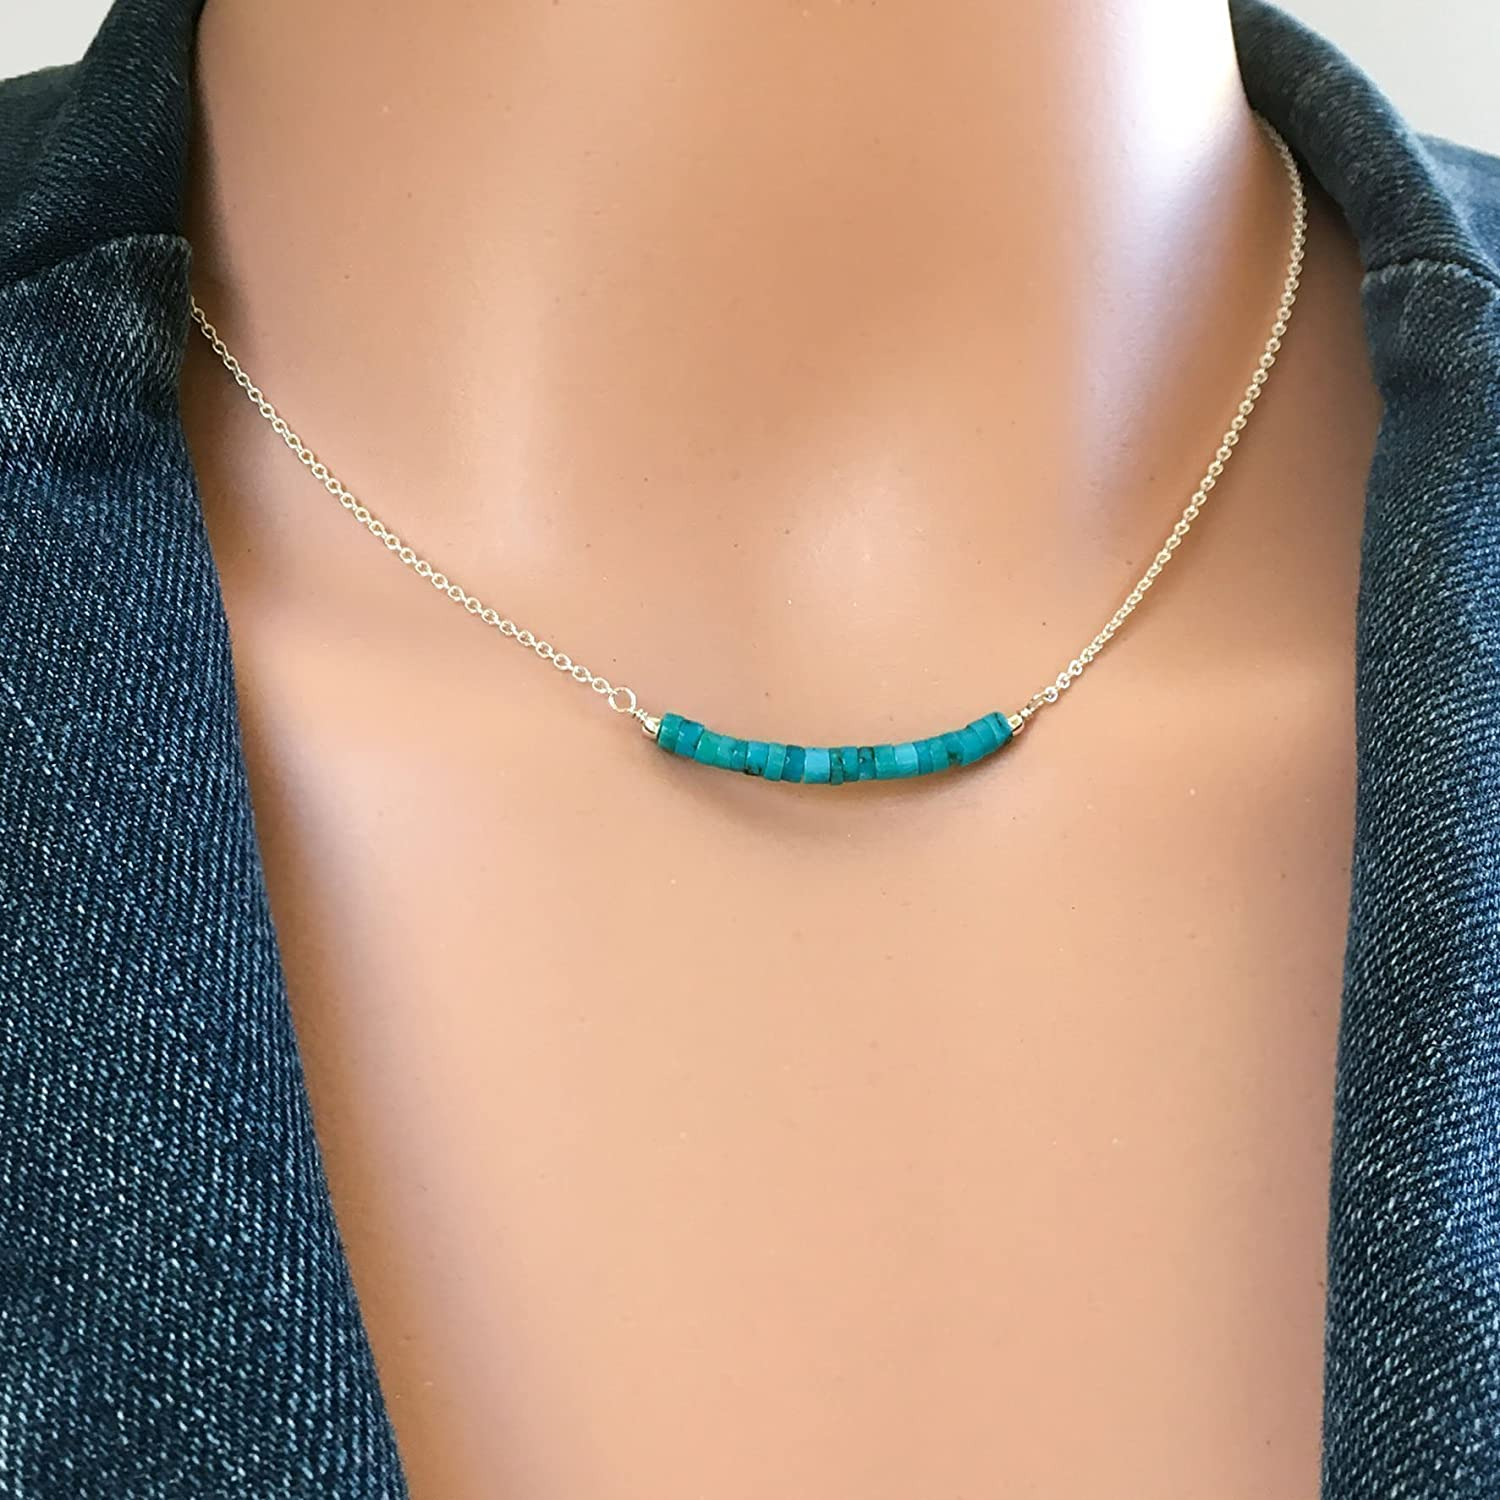 Tiny Turquoise Necklace, Sterling Silver Turquoise Bar Necklace